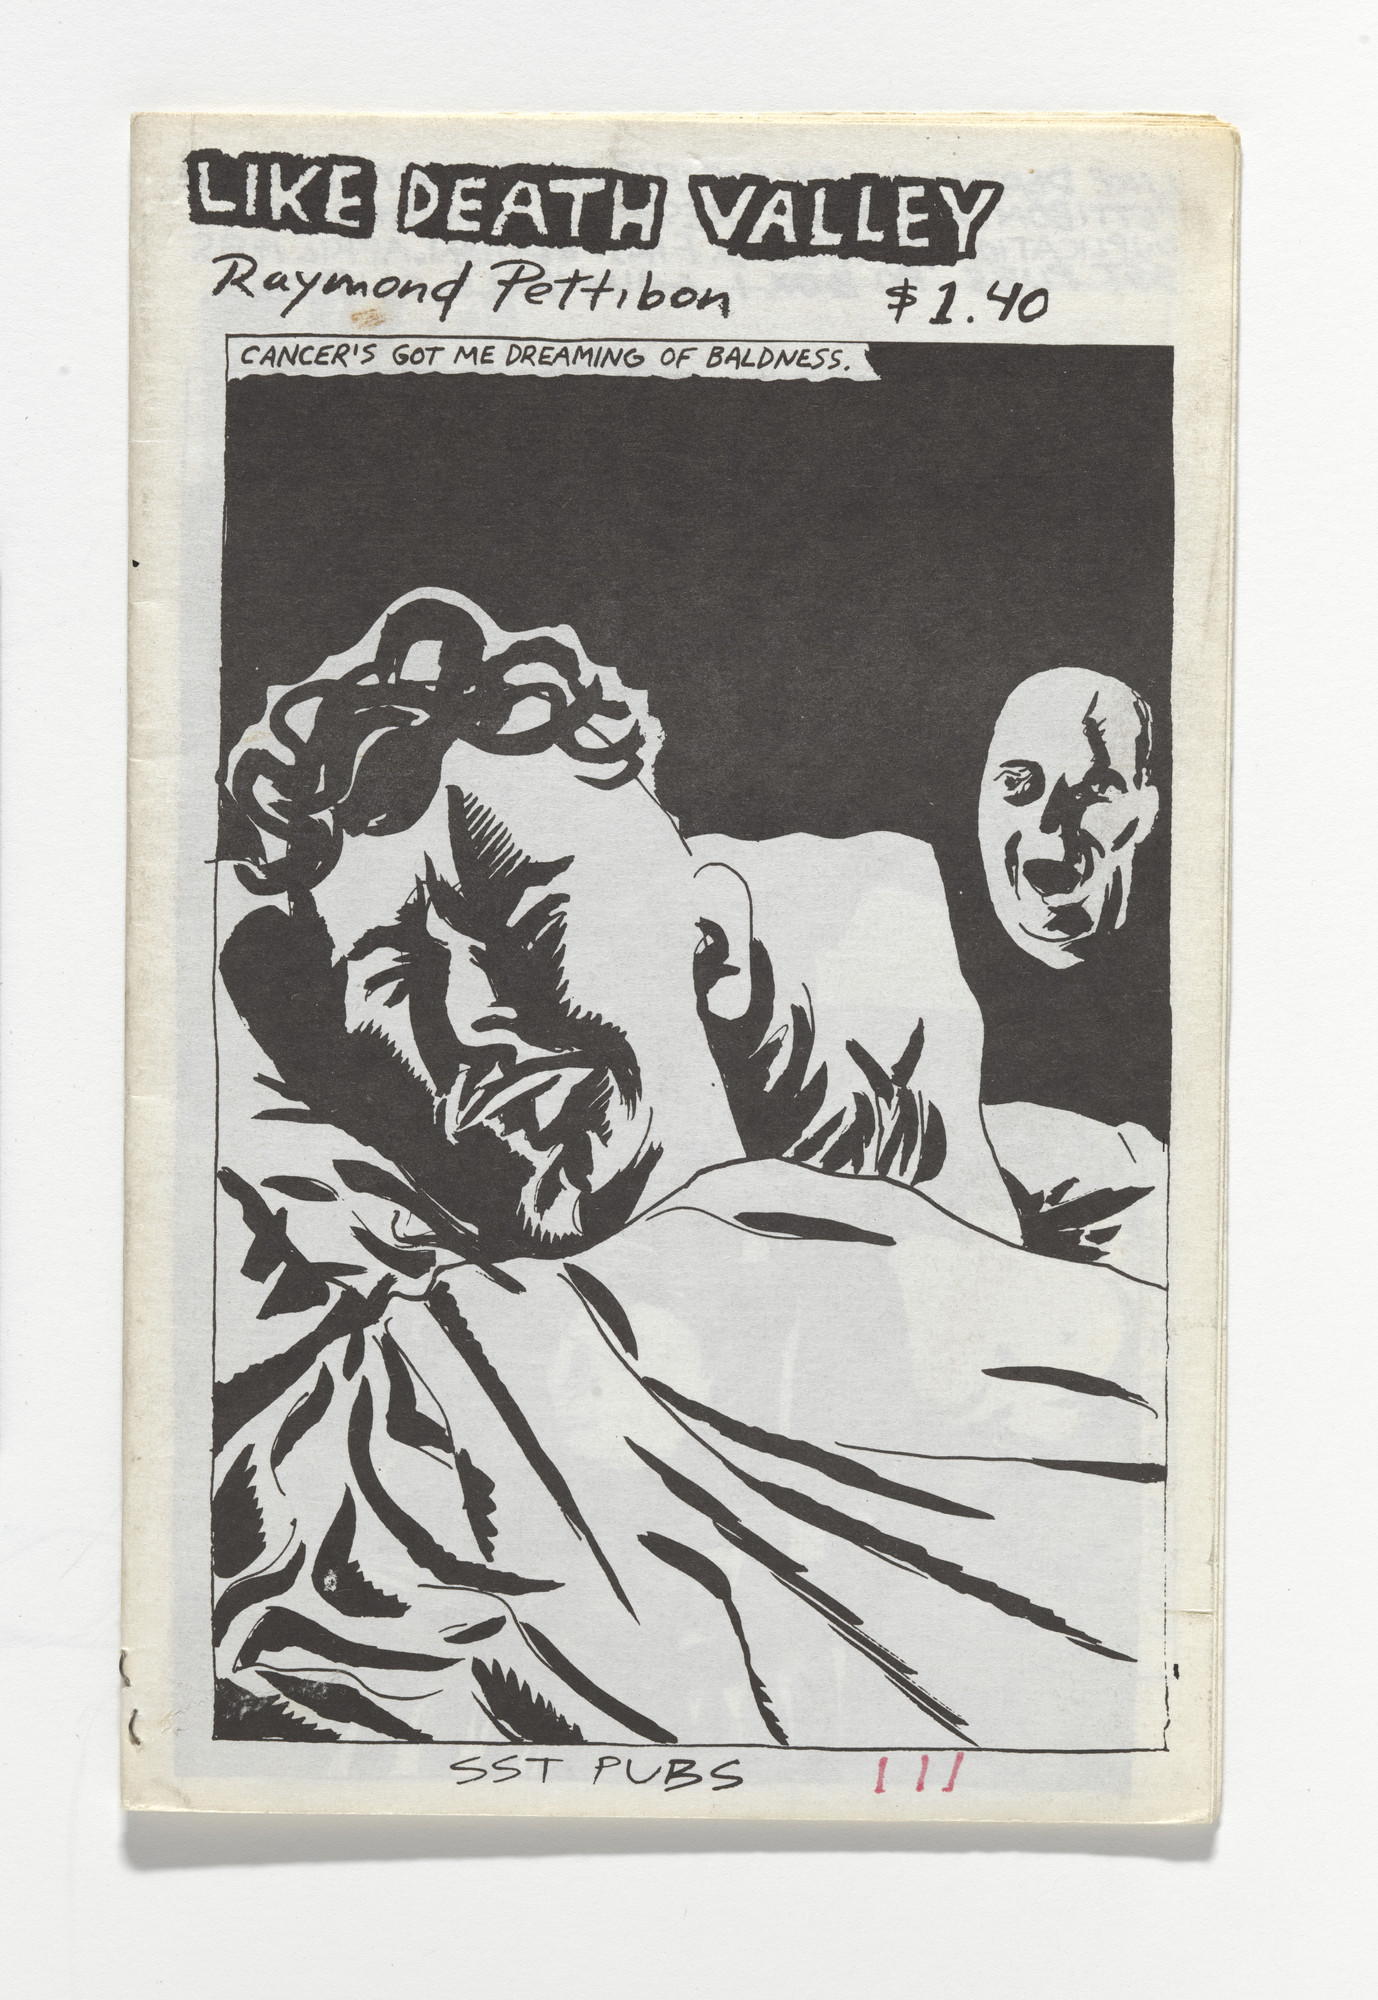 Raymond Pettibon. Like Death Valley. 1985